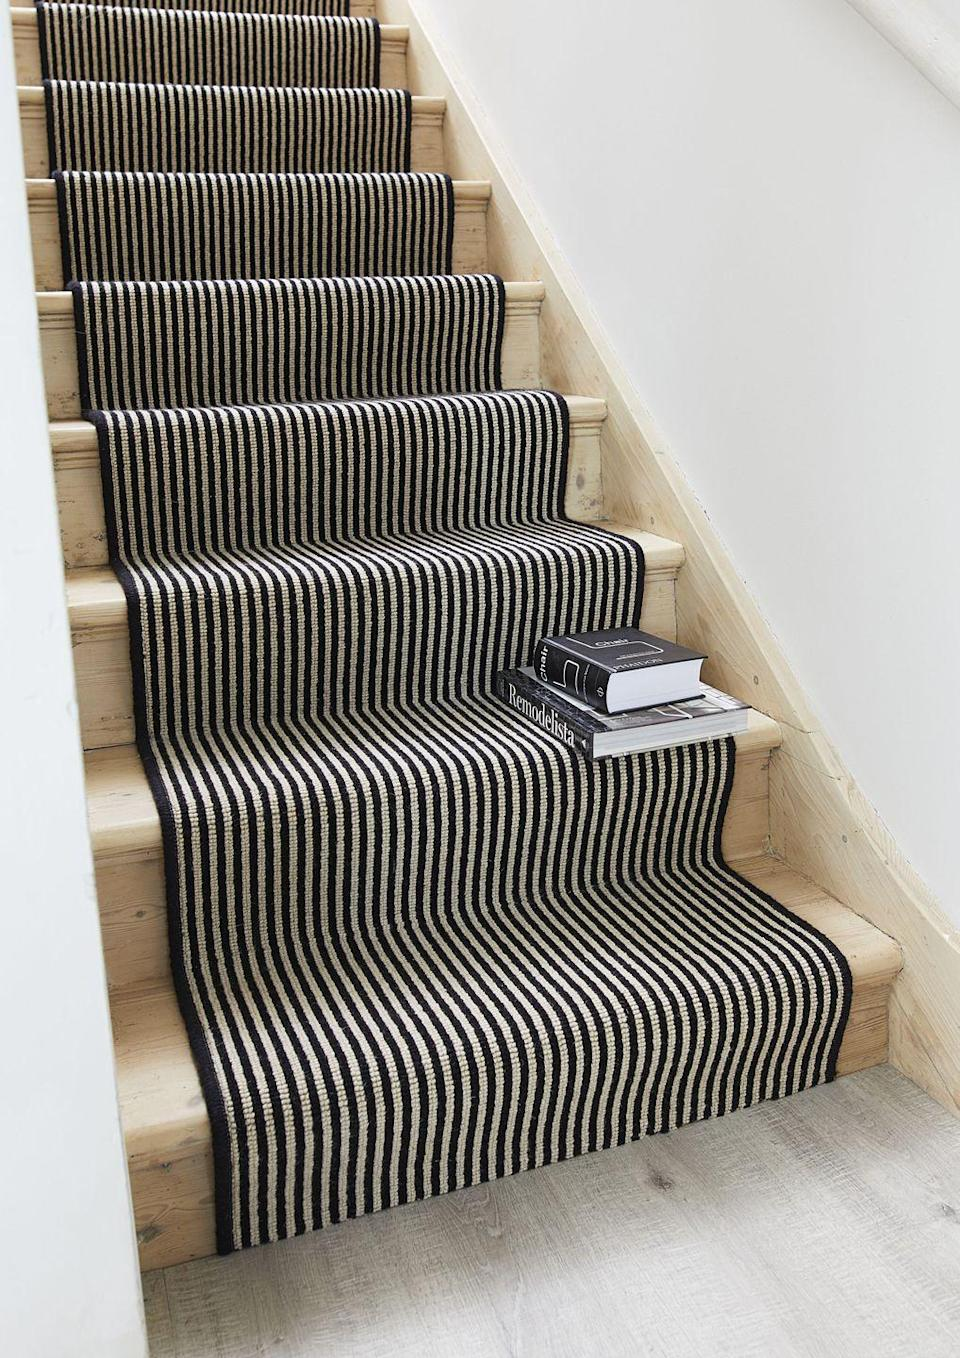 """<p>Introduce pattern in a subtle way with a stair runner. This elegant striped wool carpet from Carpetright will draw the eye upwards, elongating your stairs and giving the impression of higher ceilings. Make sure to pick a hardwearing carpet for high traffic areas such as the stairs and hallway. </p><p>Pictured: <a href=""""https://www.carpetright.co.uk/carpets/portobello/"""" rel=""""nofollow noopener"""" target=""""_blank"""" data-ylk=""""slk:Portobello Wool Carpet at Carpetright"""" class=""""link rapid-noclick-resp"""">Portobello Wool Carpet at Carpetright </a></p>"""